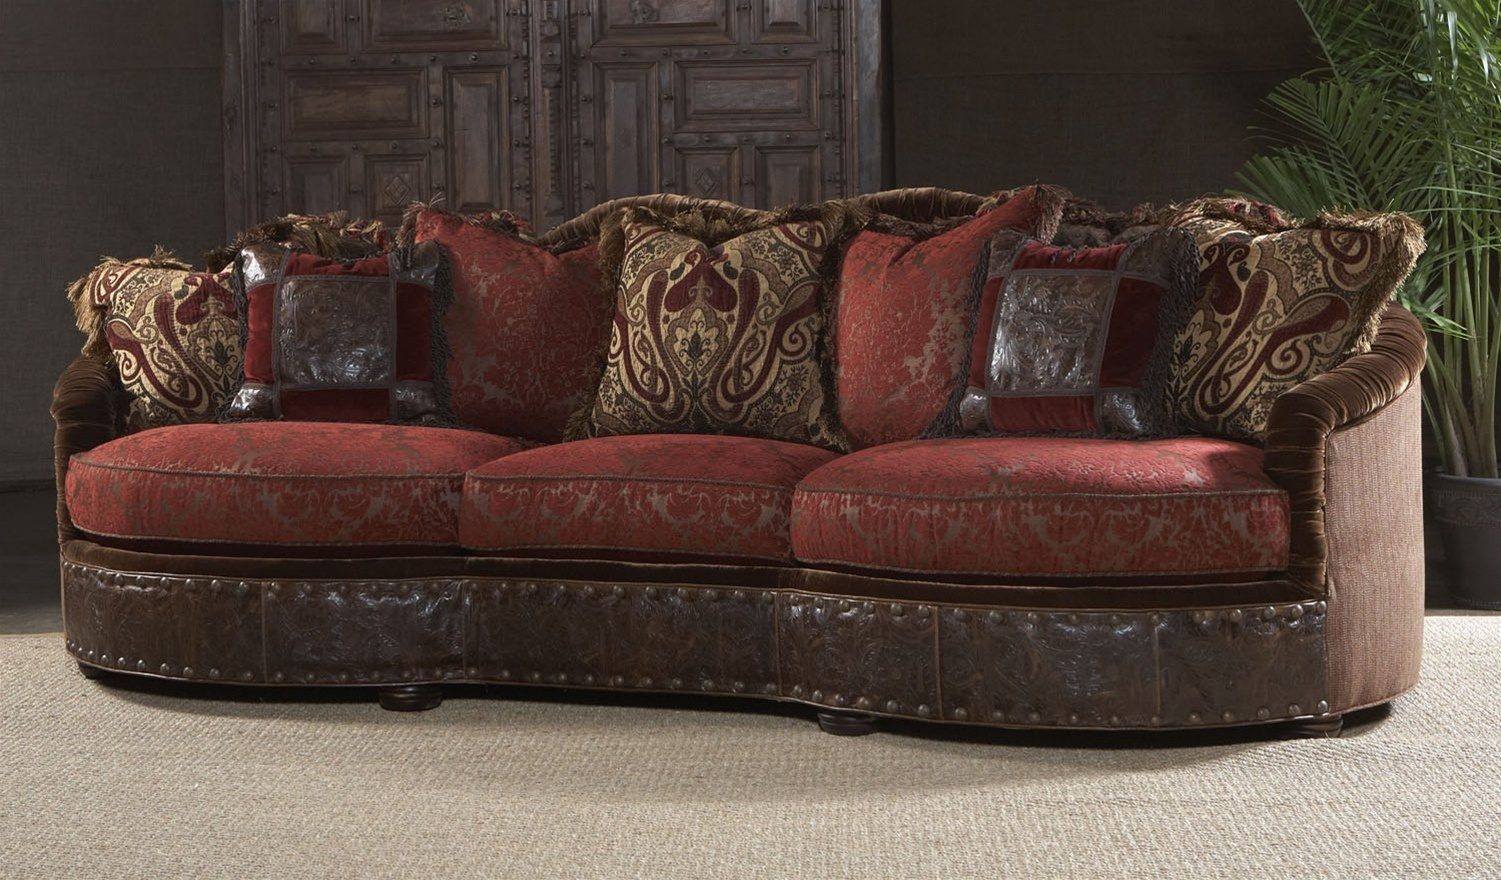 Luxury red burgundy sofa or couch for Furniture sofas and couches